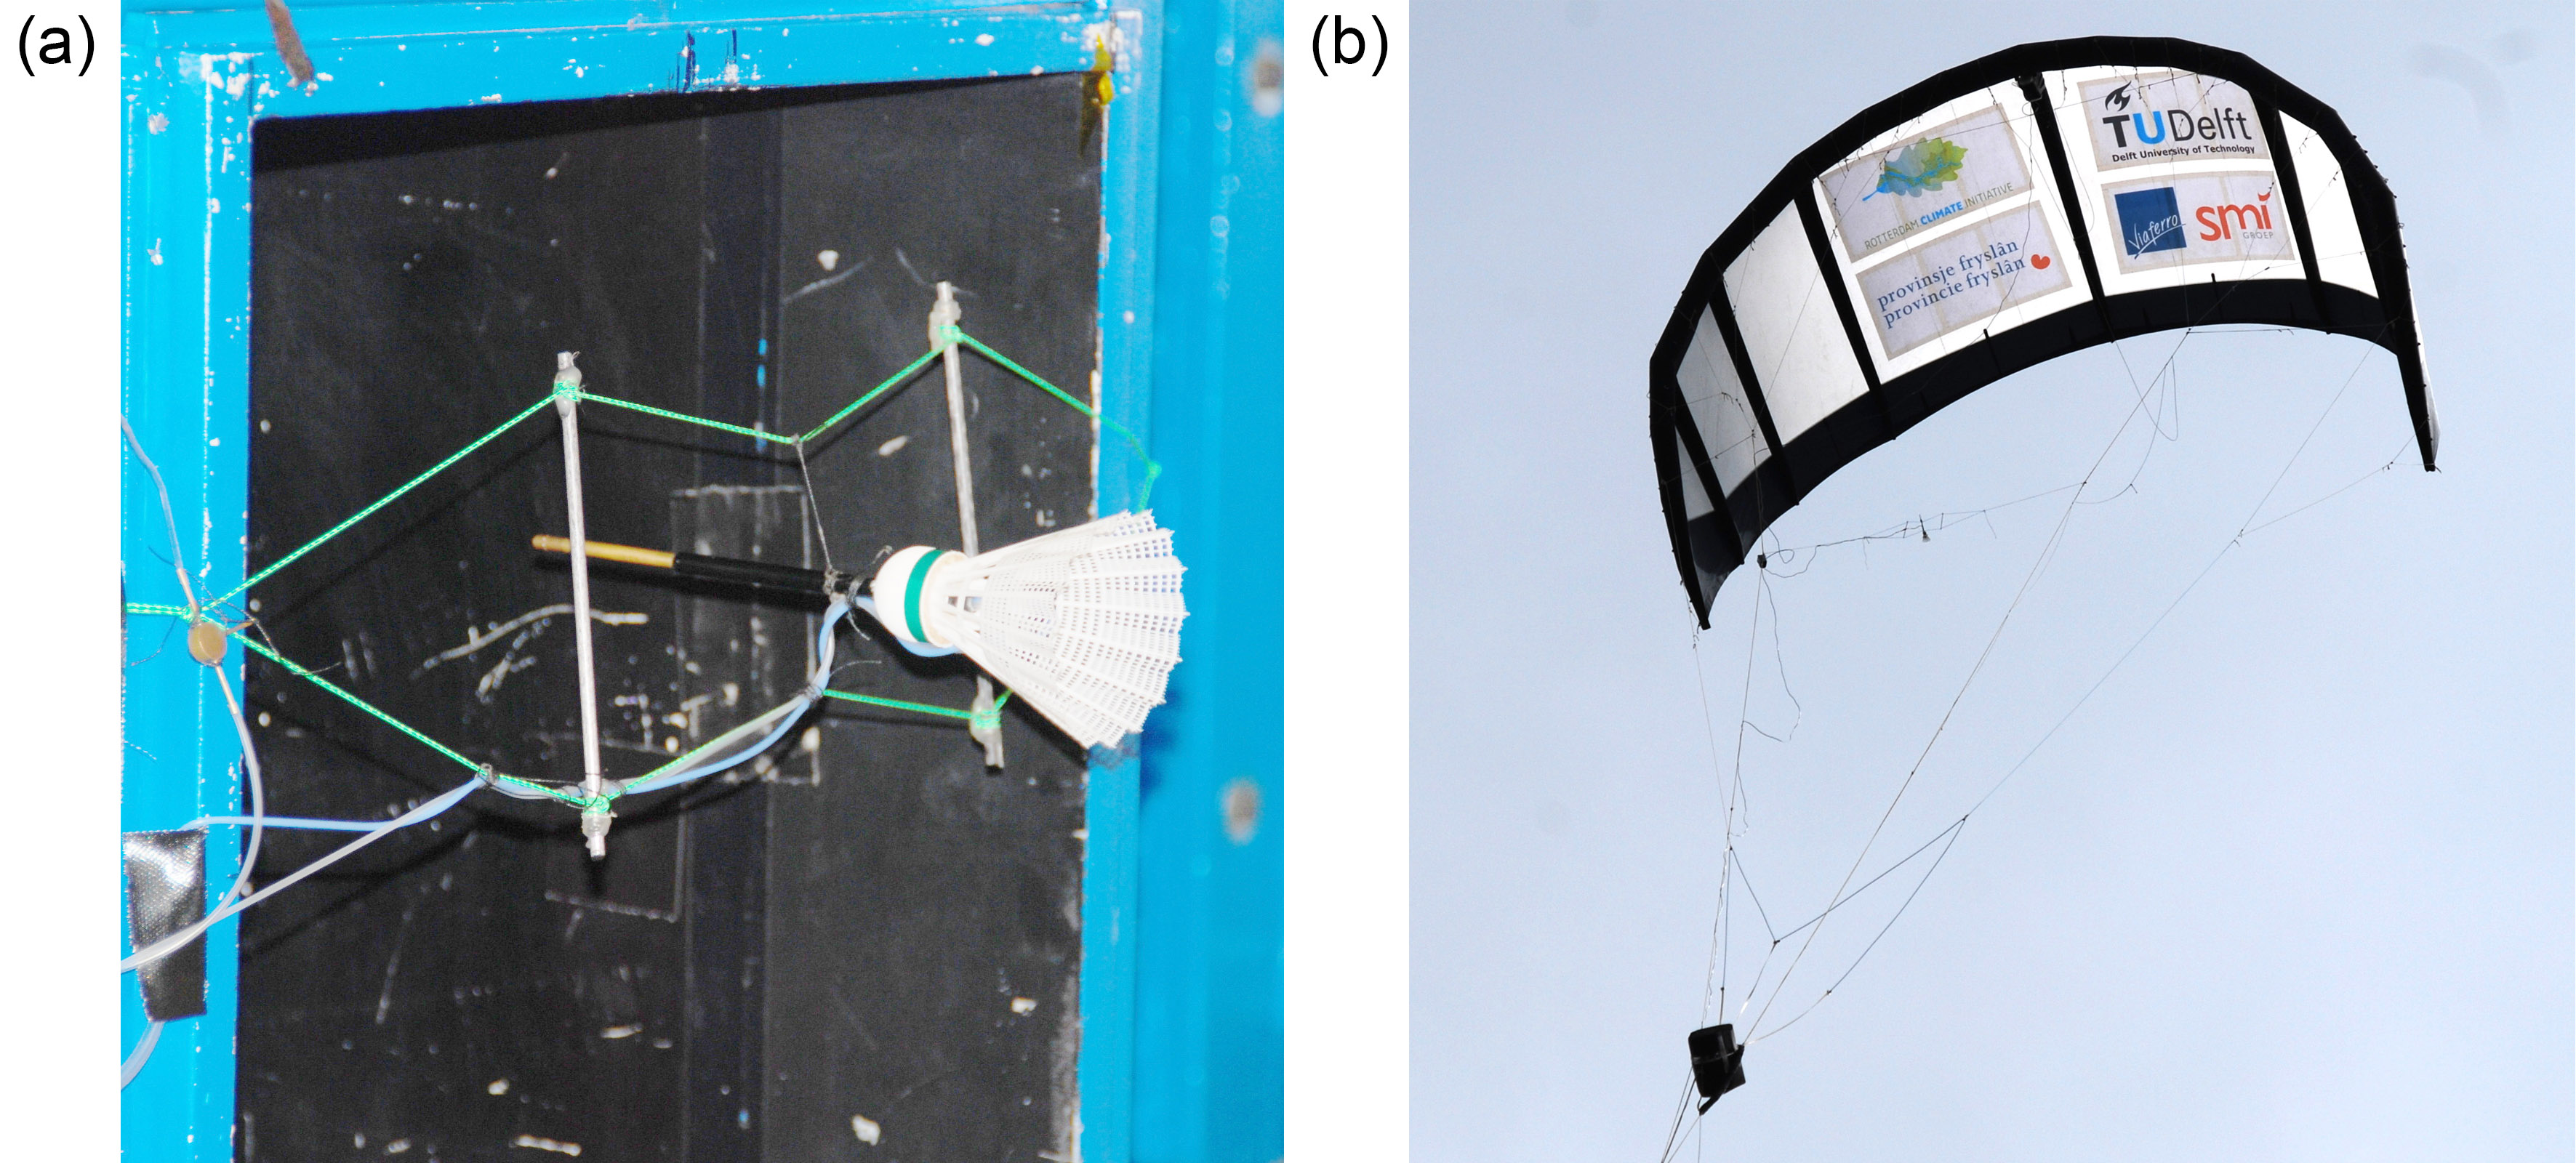 WES - Aerodynamic characterization of a soft kite by in situ